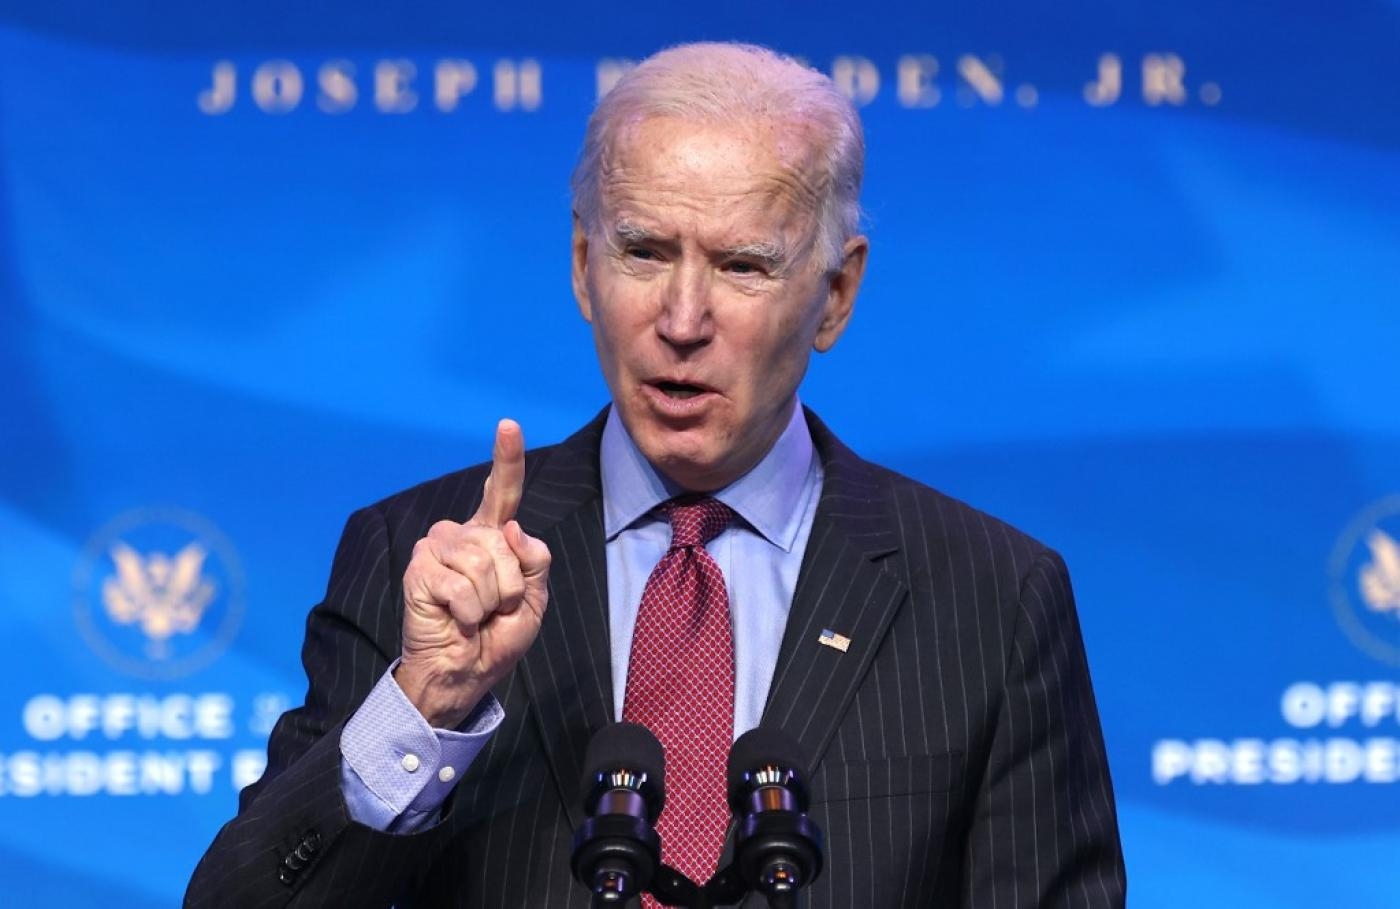 Biden has expressed an intention to pursue a foreign policy based on human rights, and has criticised both Saudi Arabia and Egypt.